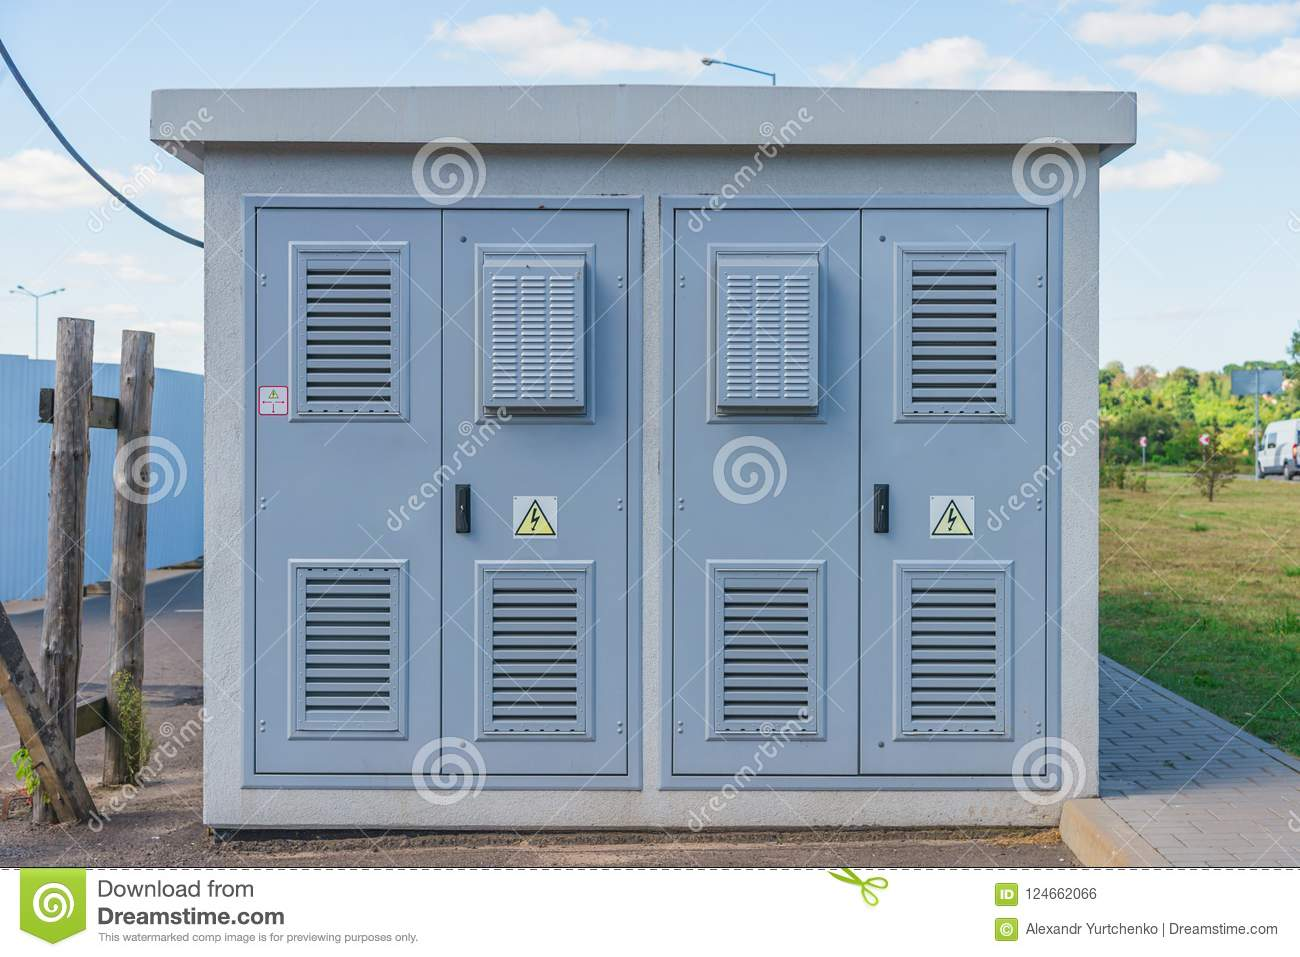 Outdoor Electrical Room Great Installation Of Wiring Diagram Electric Transformer Substation Stock Photo Image Rh Dreamstime Com Remote Electronic